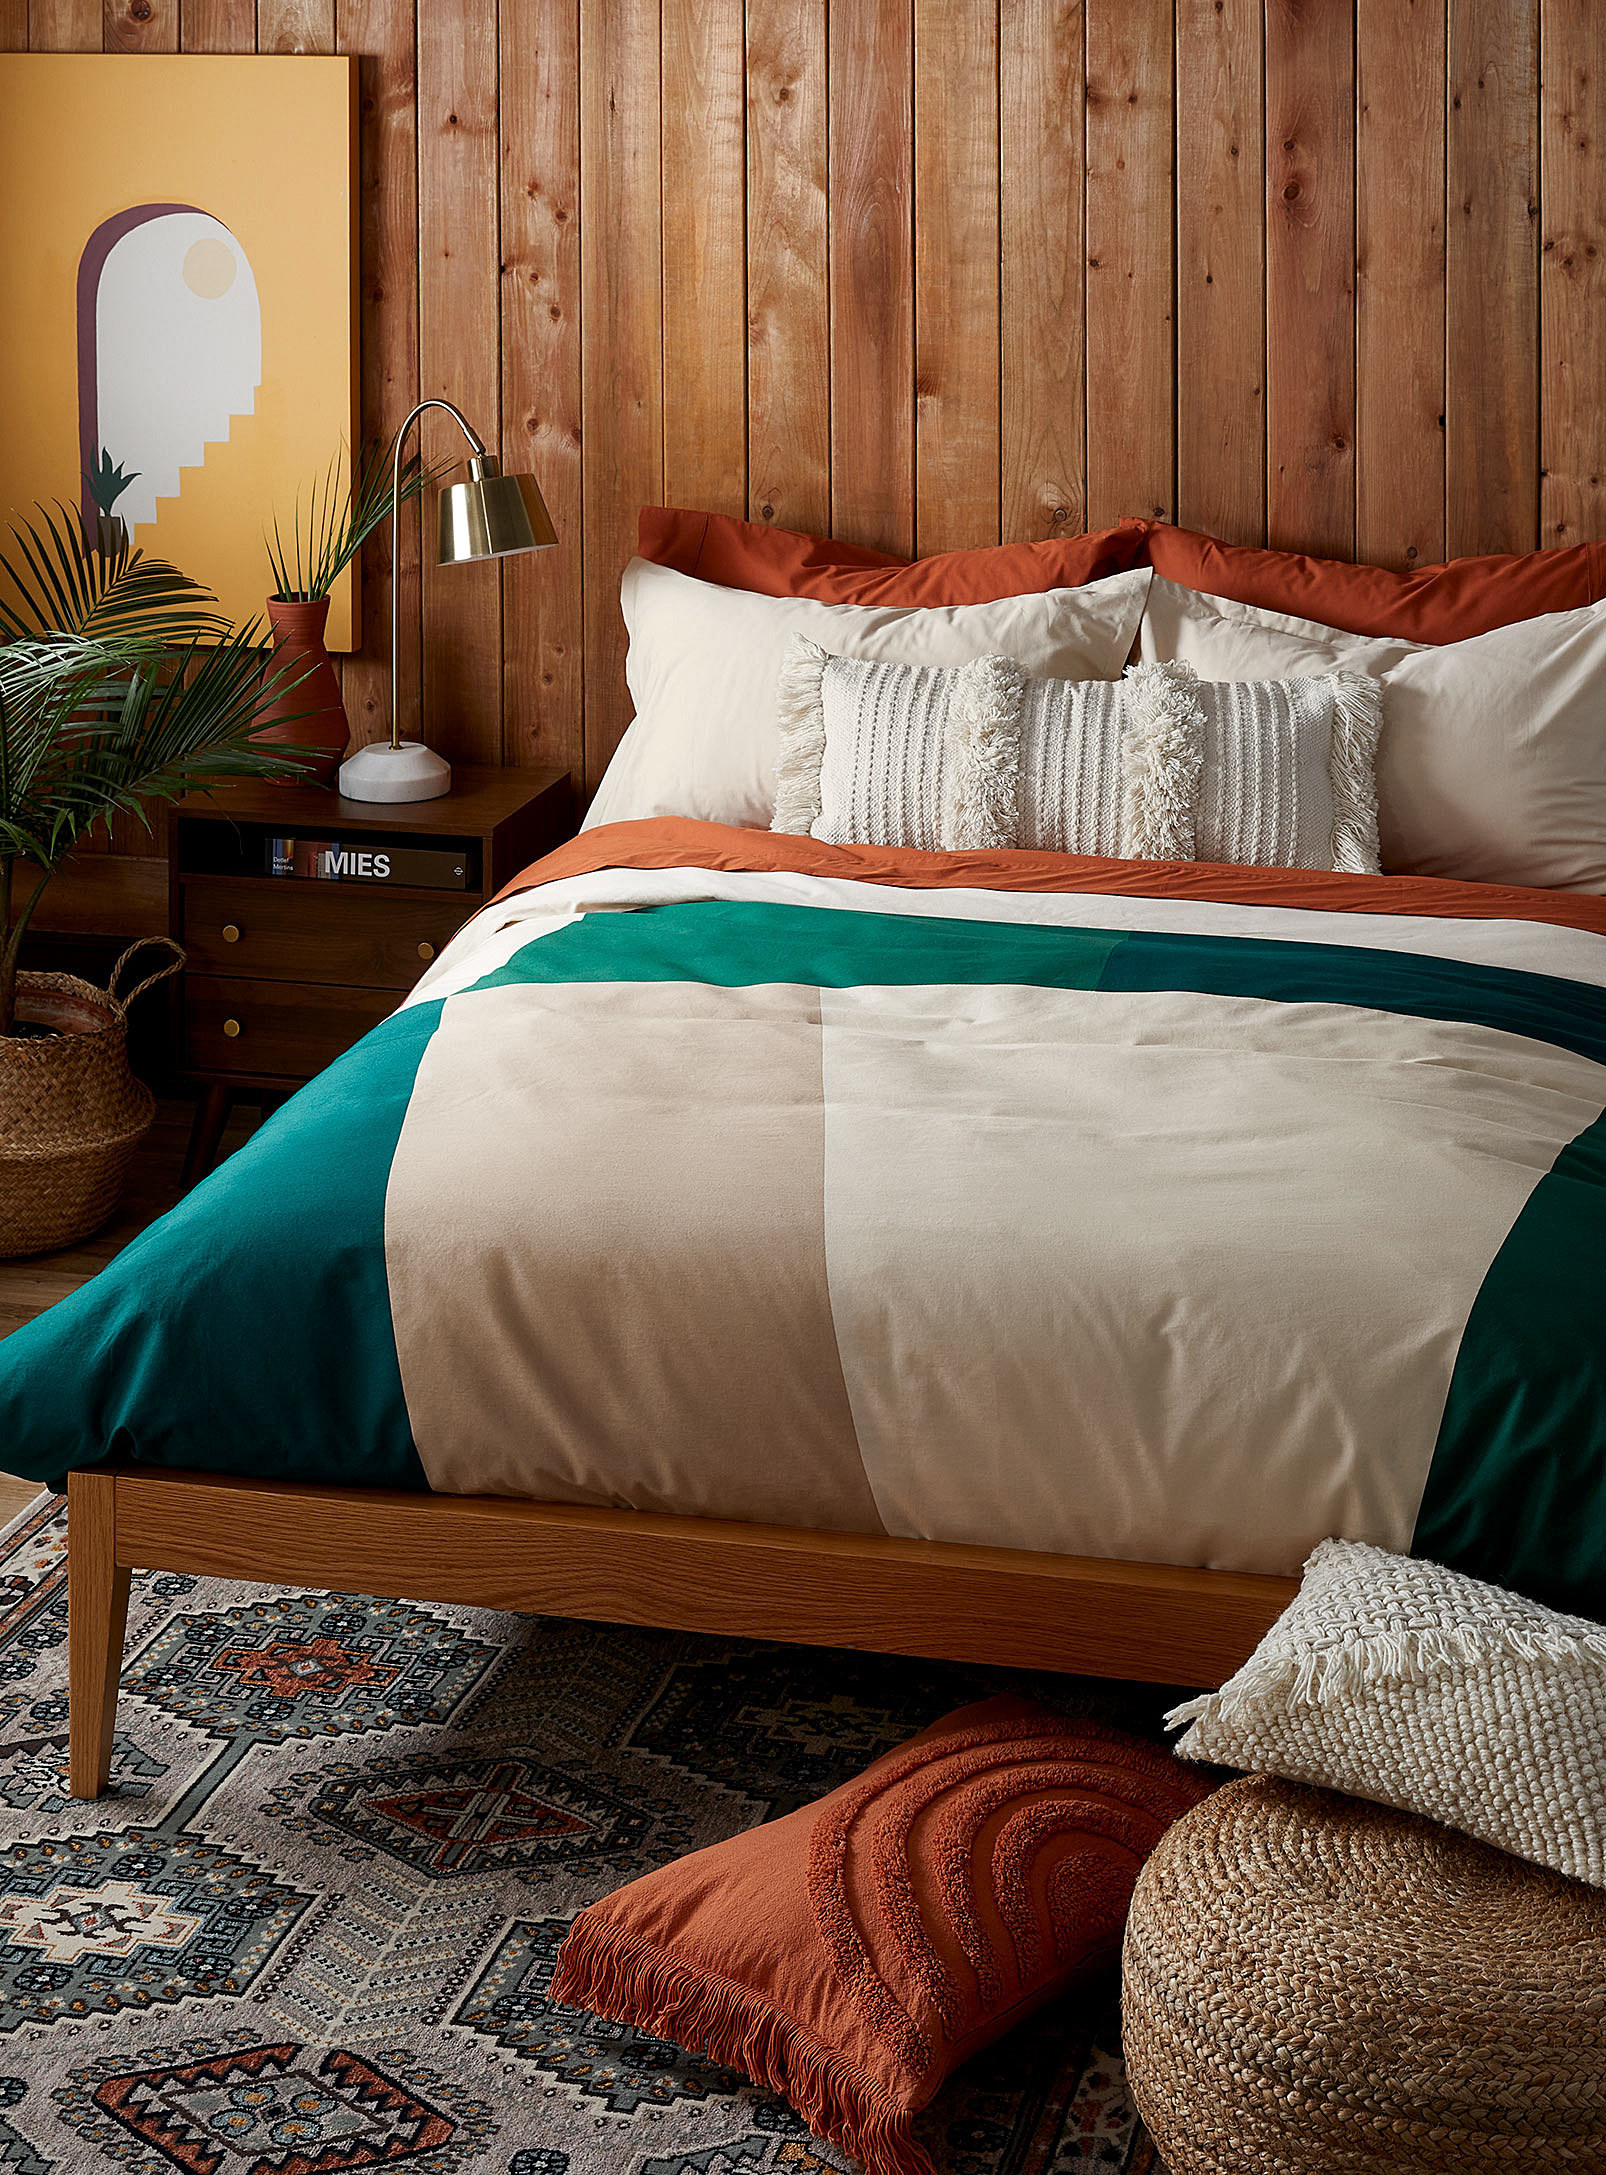 A duvet on a bed with pillows